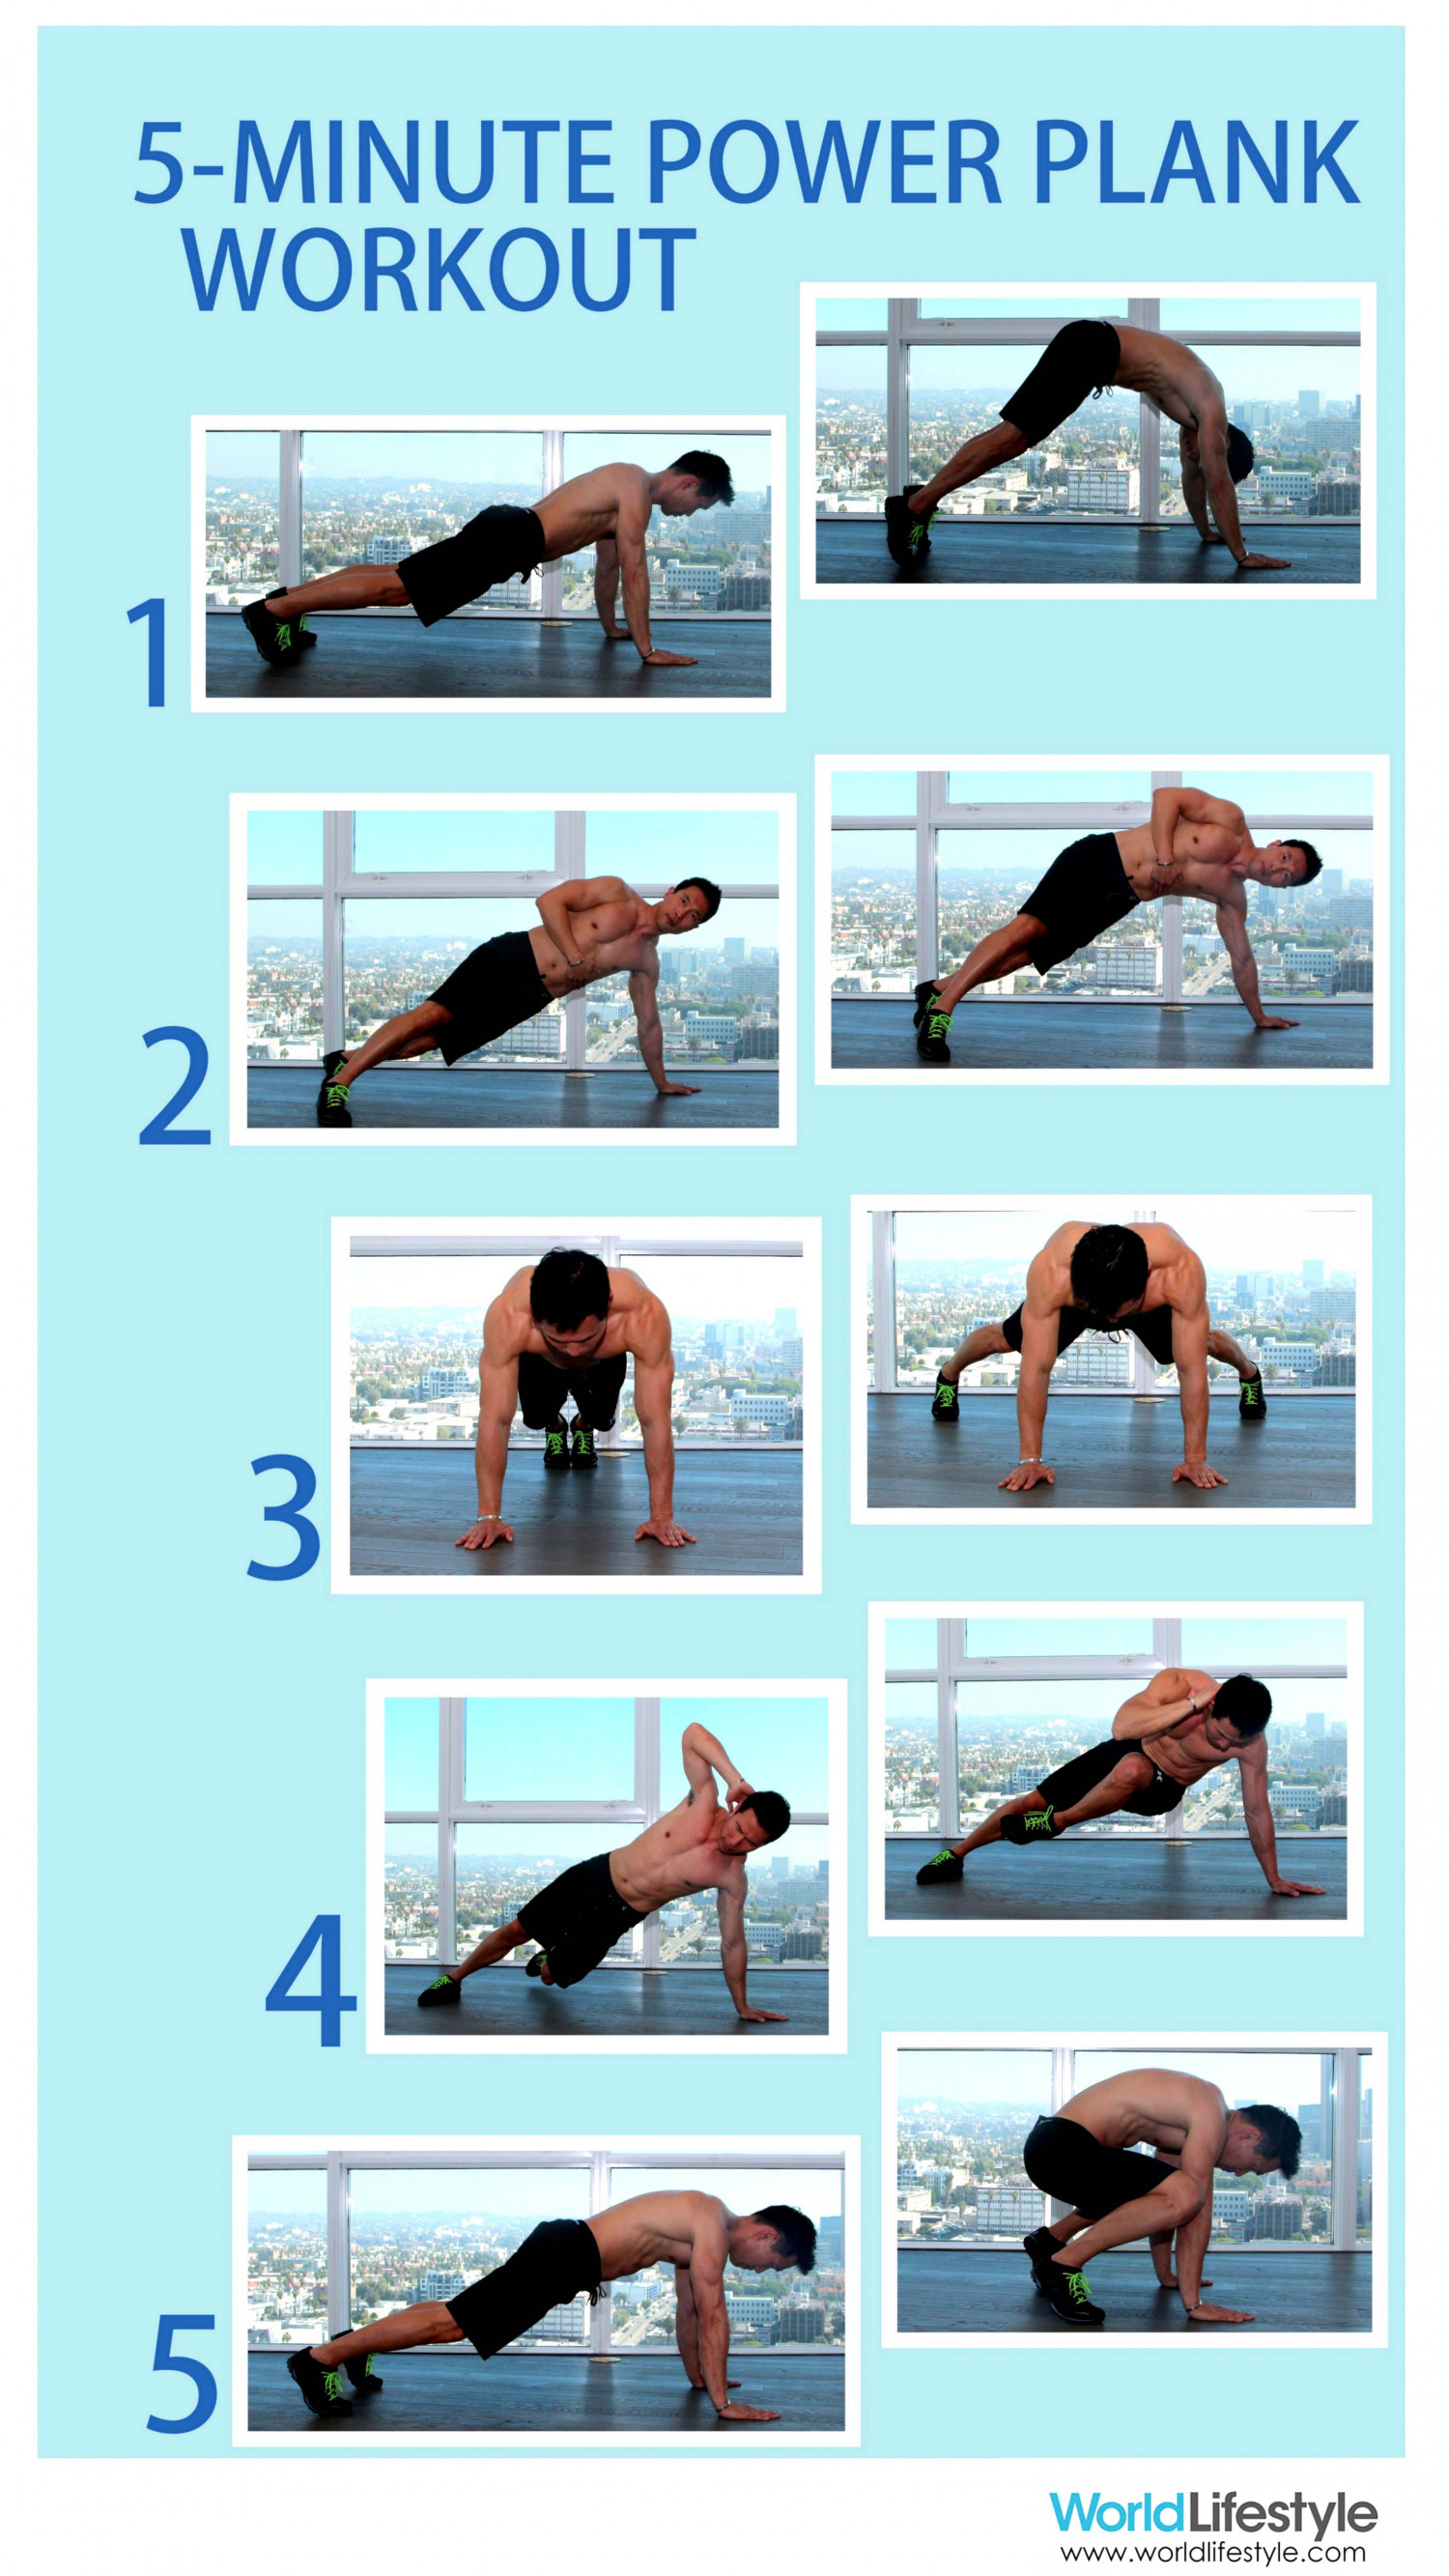 5 Minute Makeup Must Haves: 5-Minute Power Plank Workout